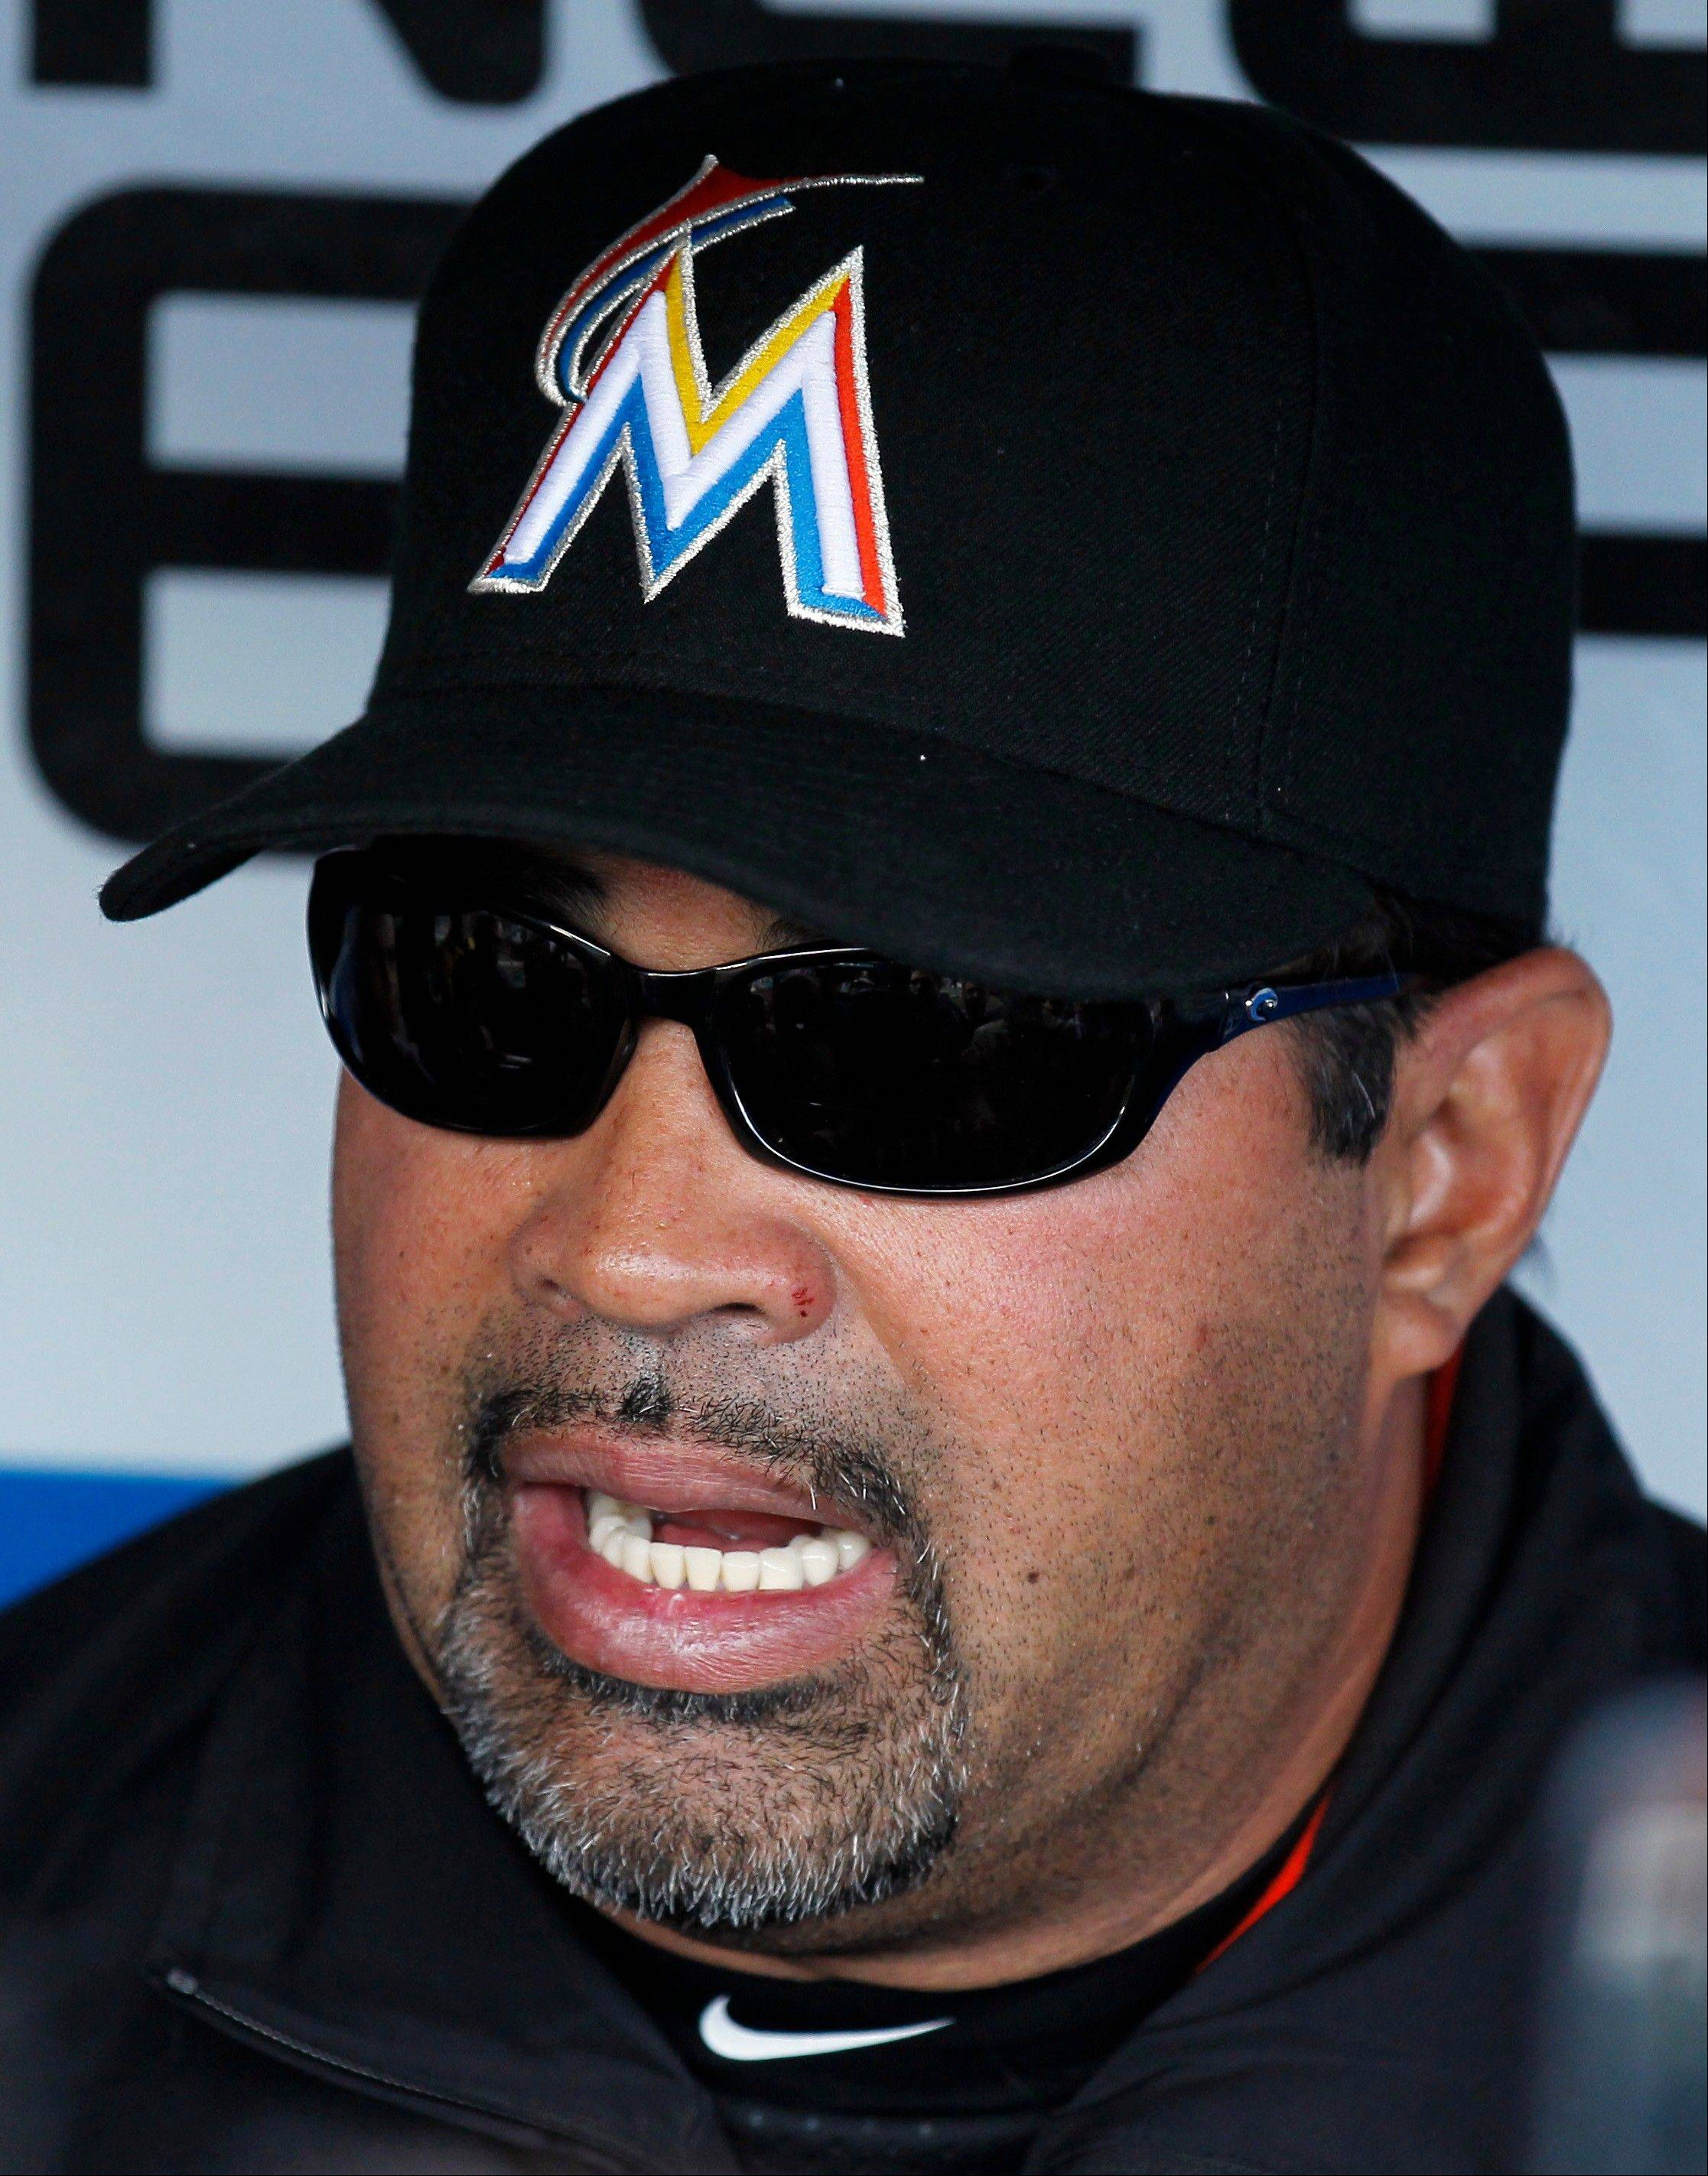 Miami Marlins manager Ozzie Guillen talks with the media before the Philiadelphia Phillies home opener baseball game, Monday, April 9, 2012, in Philadelphia.